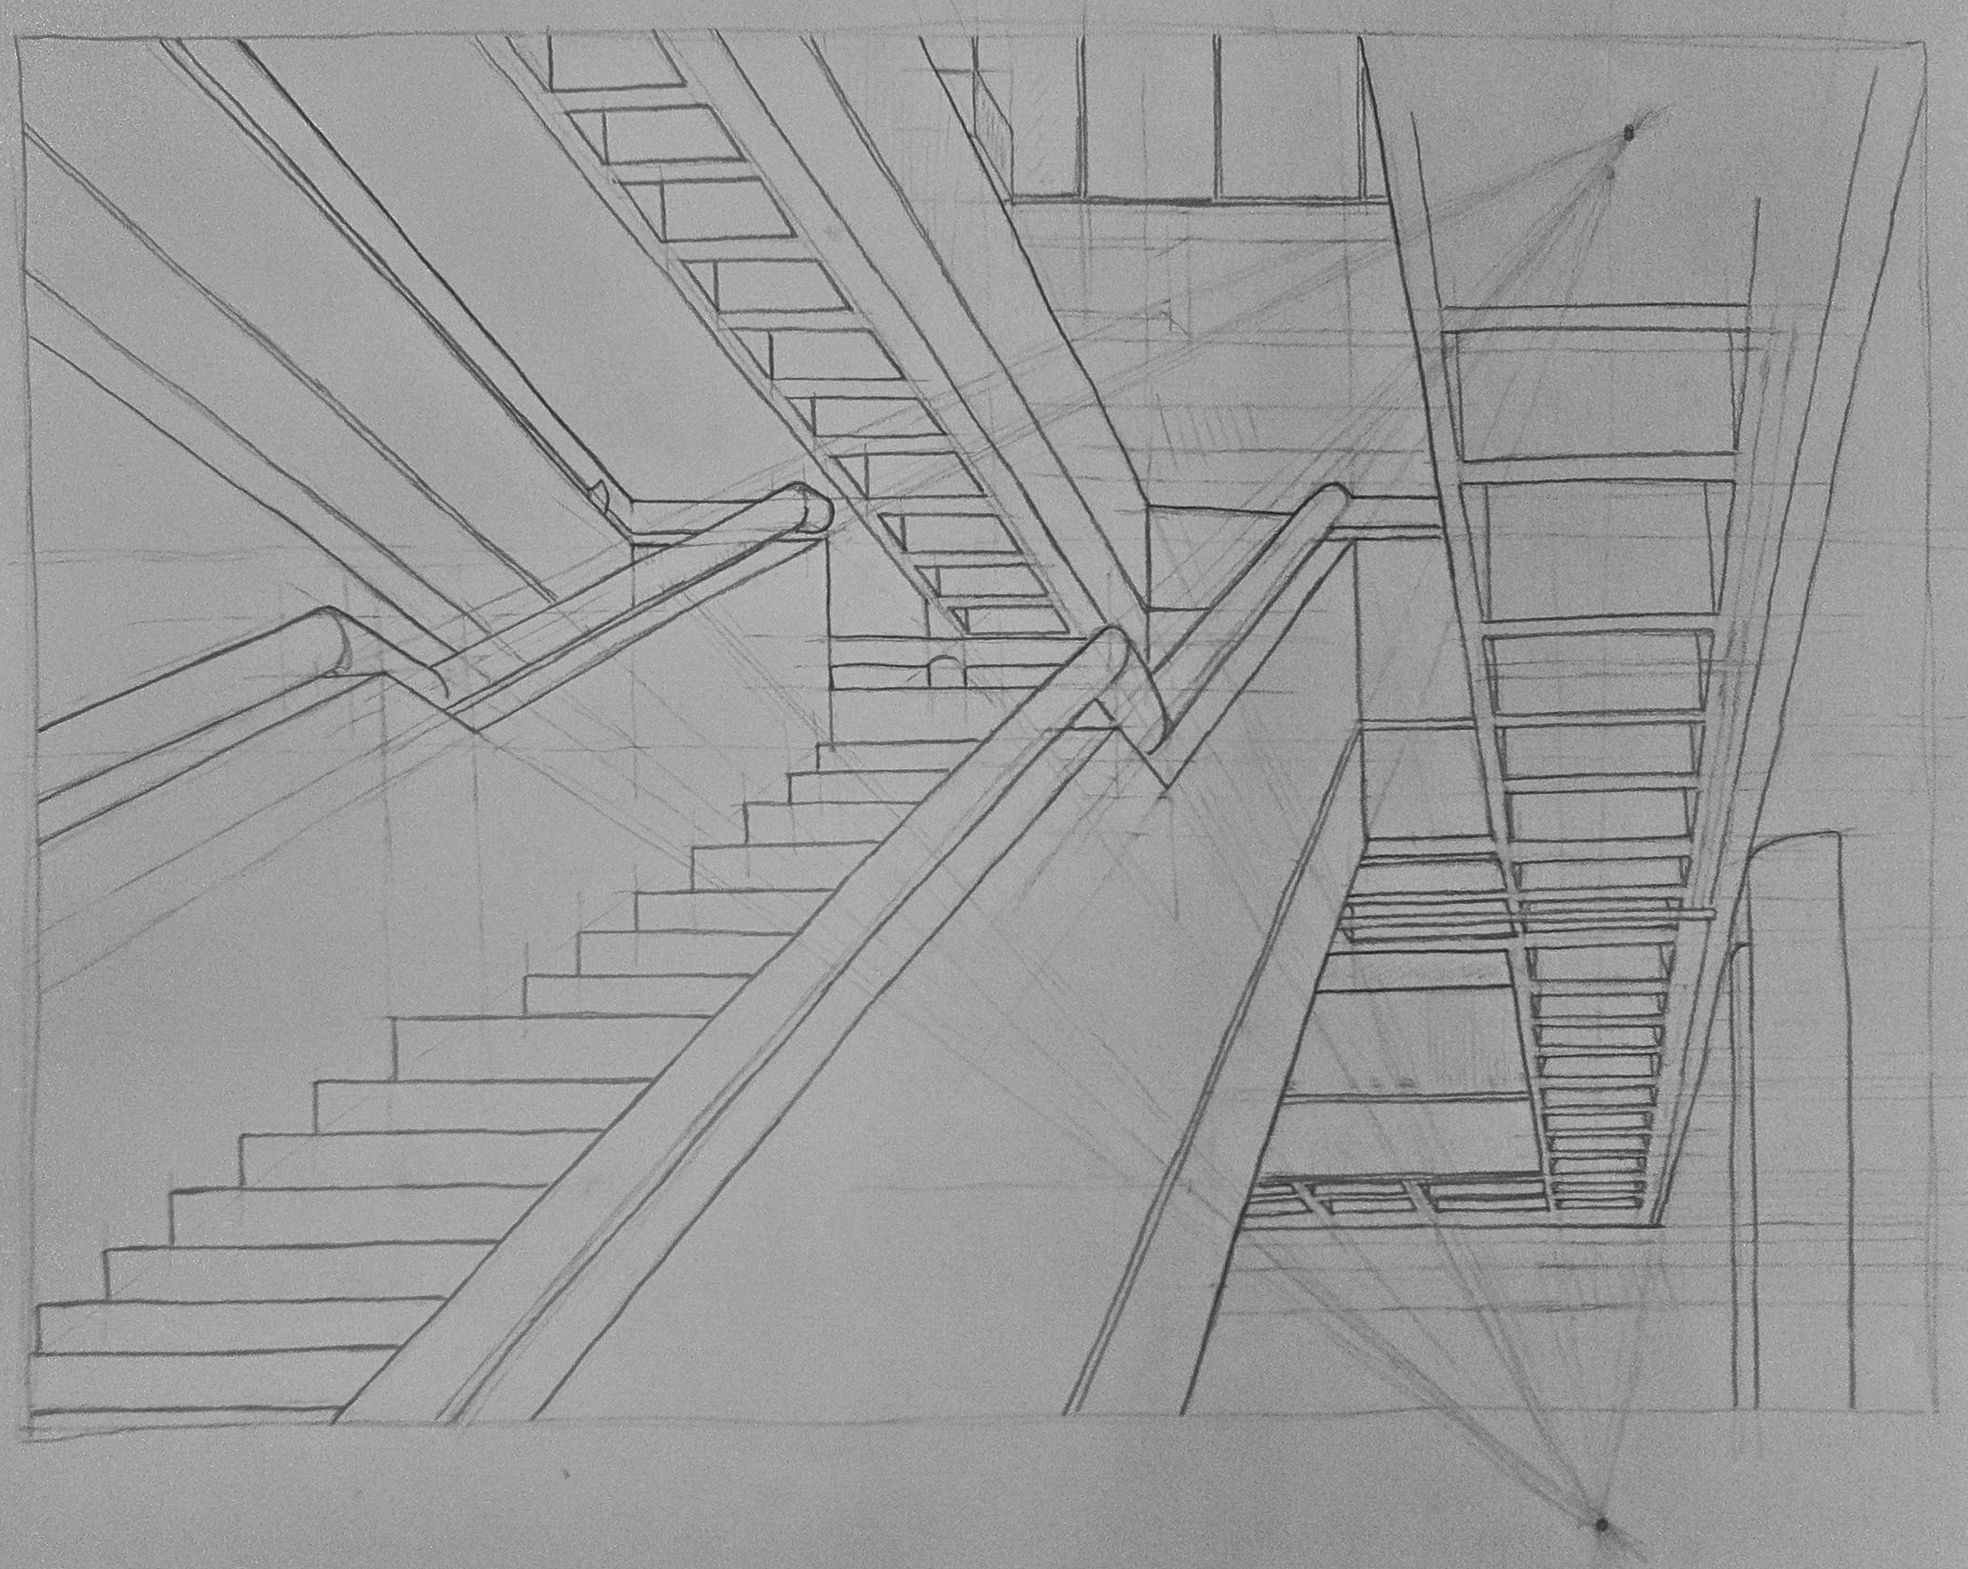 A Two Point Perspective Drawing Of The Main Stairs In The